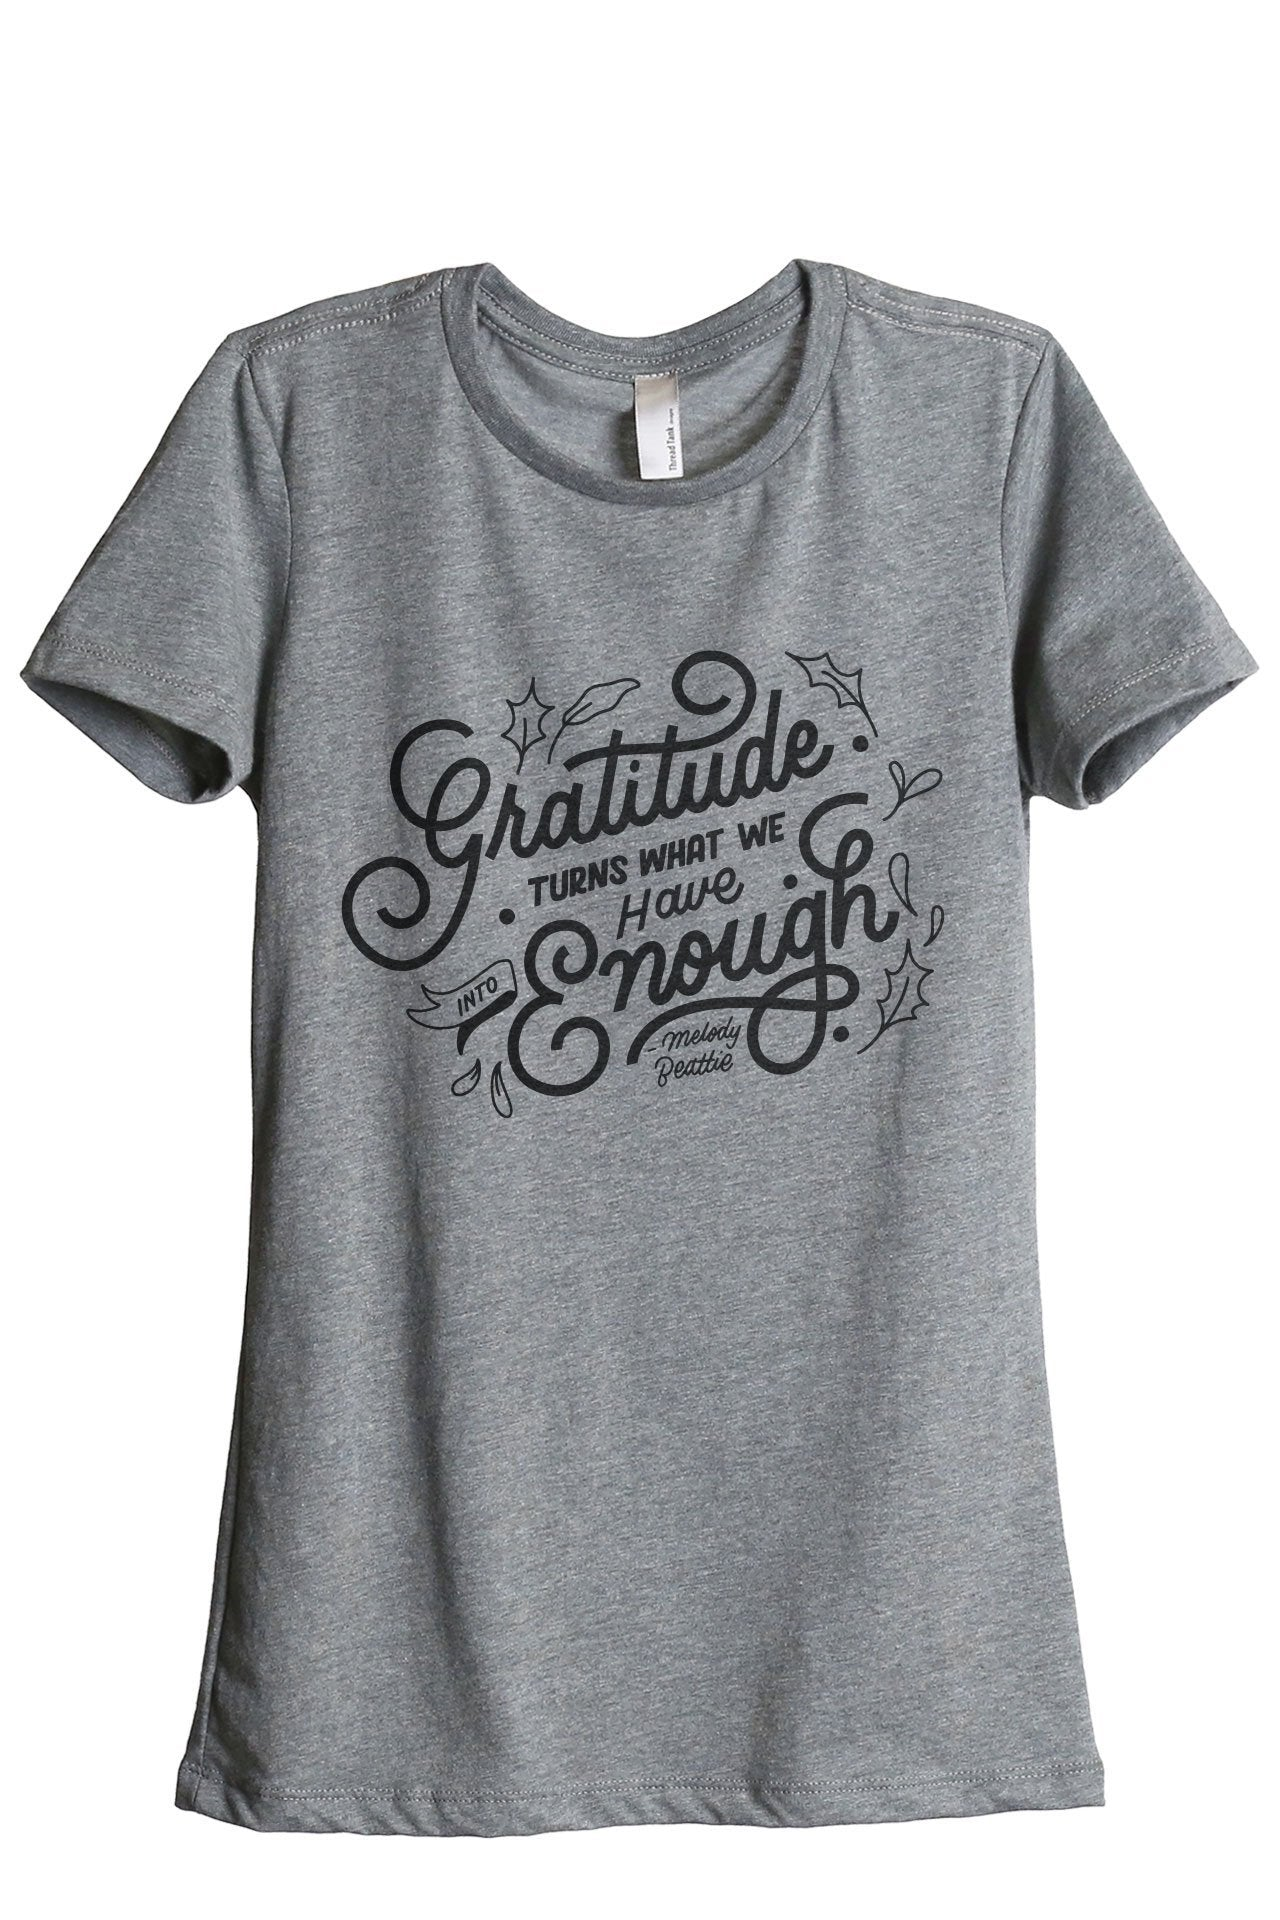 Gratitude Turns What We Have Into Enough Women's Relaxed Crewneck T-Shirt Top Tee Heather Grey